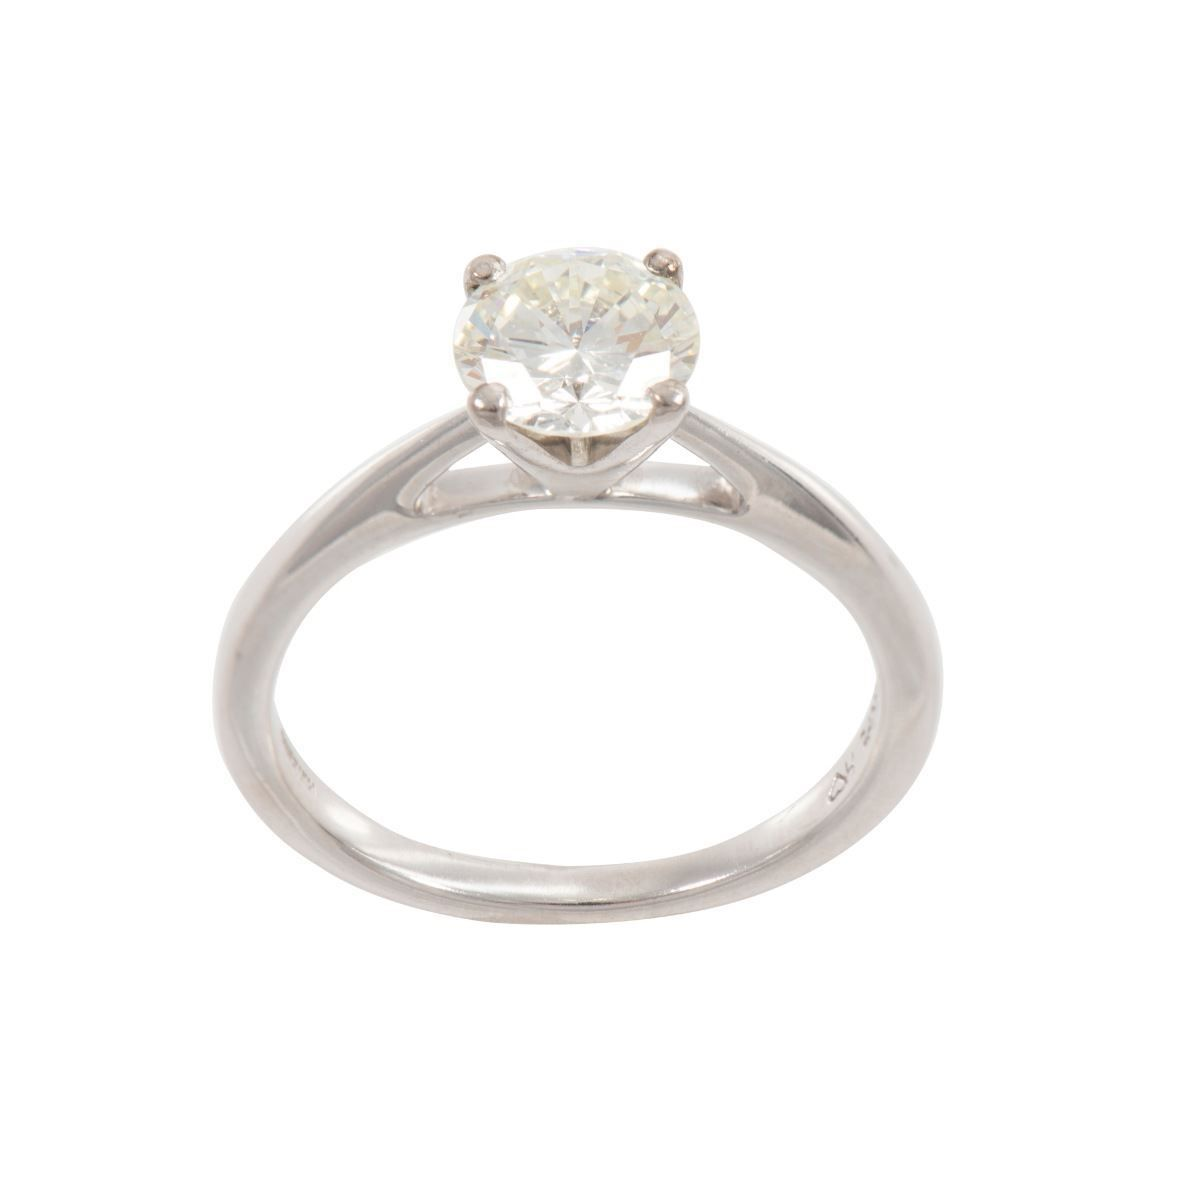 18ct White Gold 1.2ct Diamond Solitaire Ring Ladies Size N